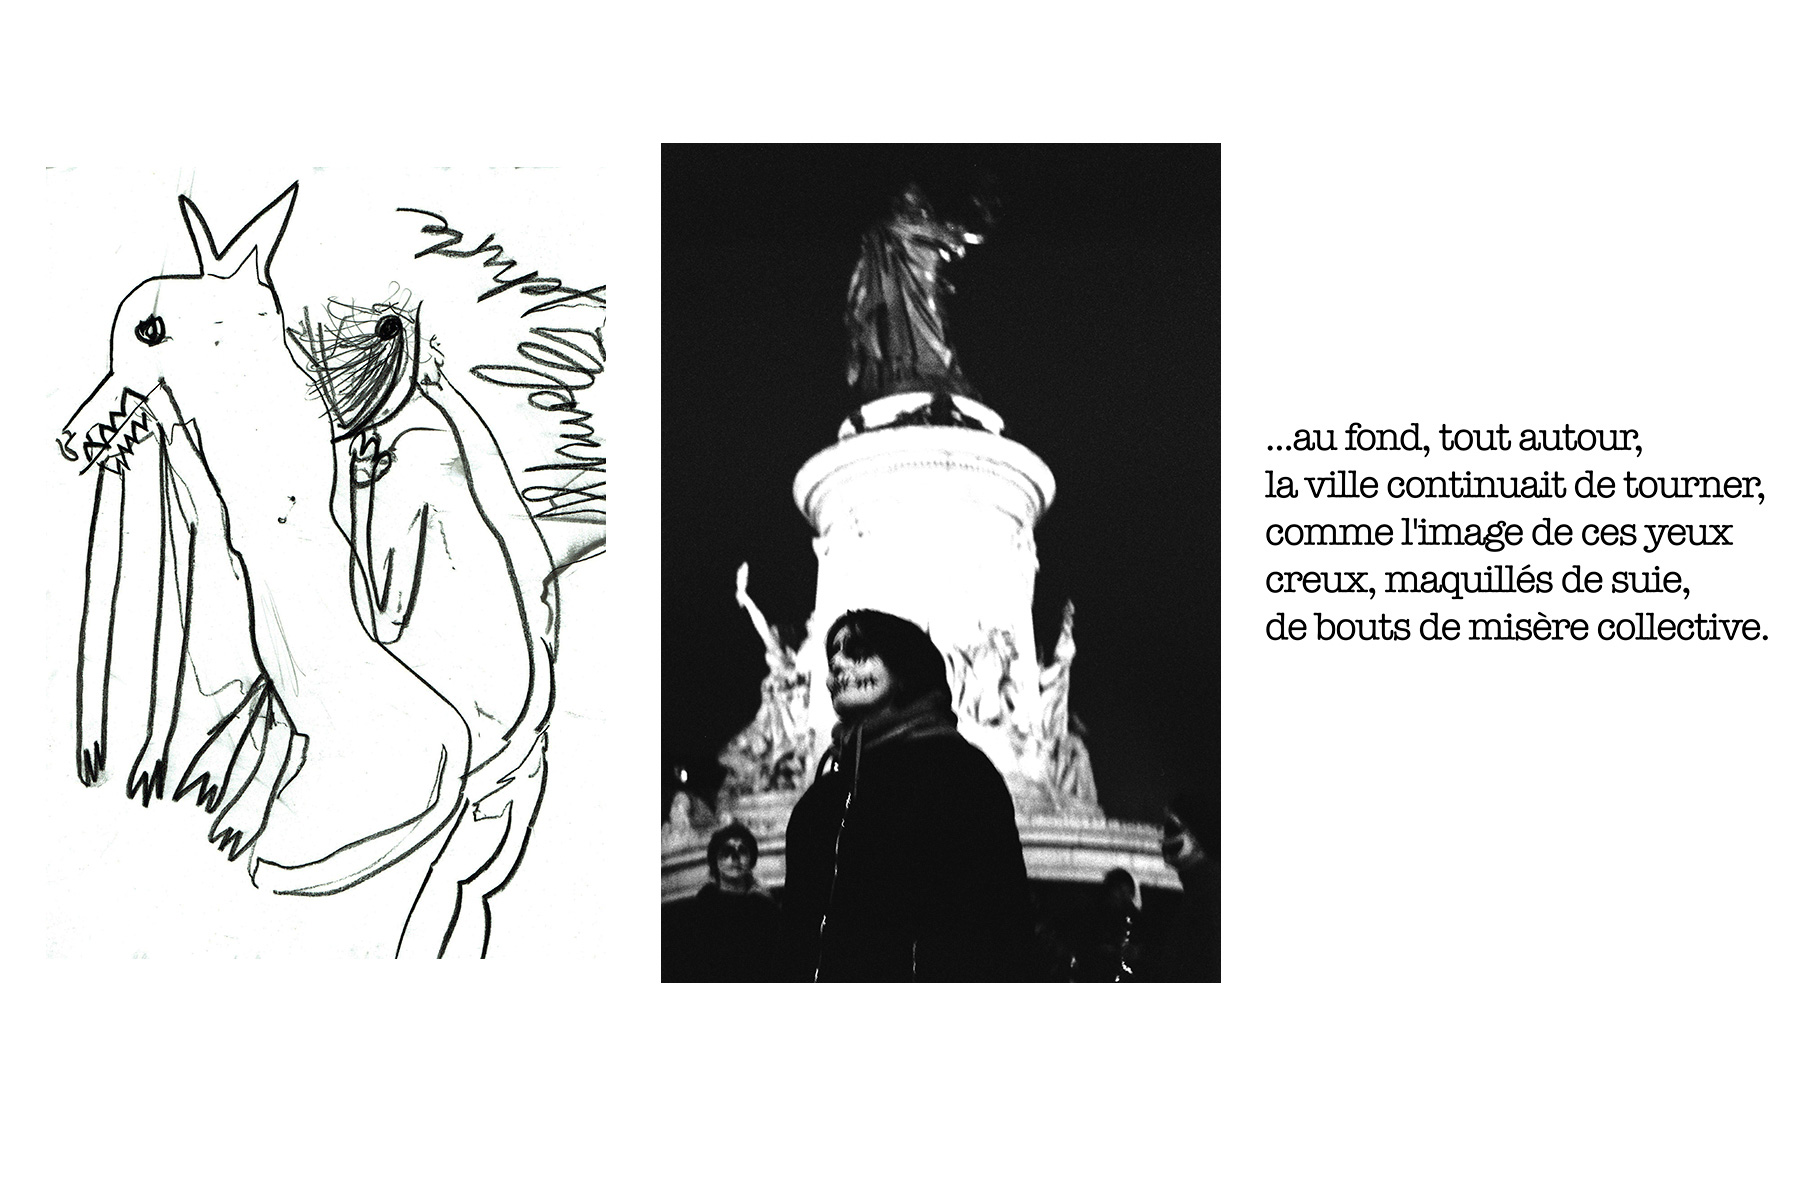 Triptyque. Drawing Photo Text. Manifestation Victims. Olenka Carrasco. The firstnames list